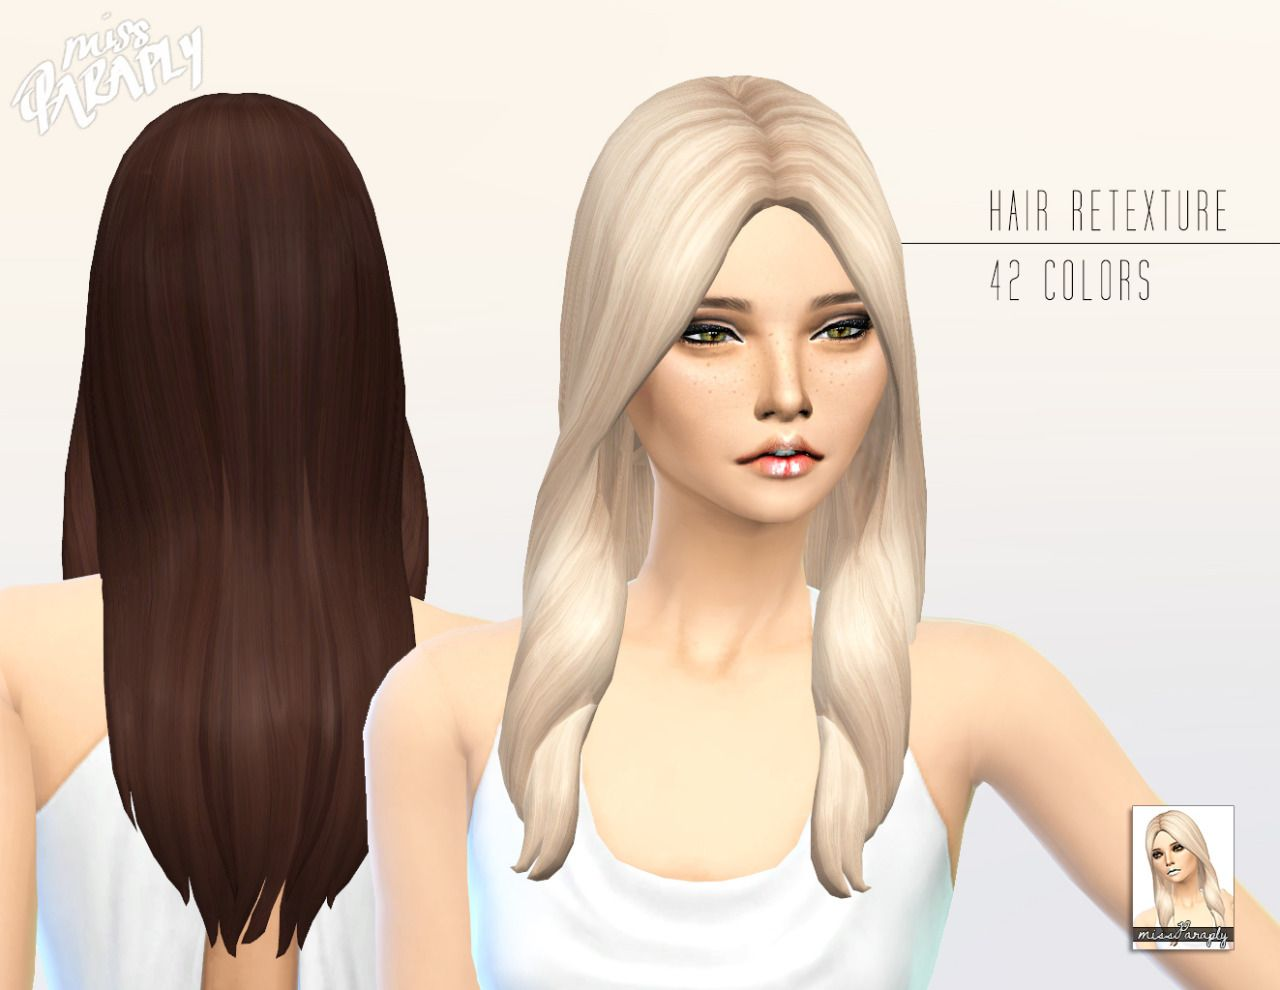 The sims 4 hairstyles cc - Retexture Of Oblivion By Texture By Pooklet Color Actions By Me This Hair Comes In Three Different Flavors Choose Only One Of Them